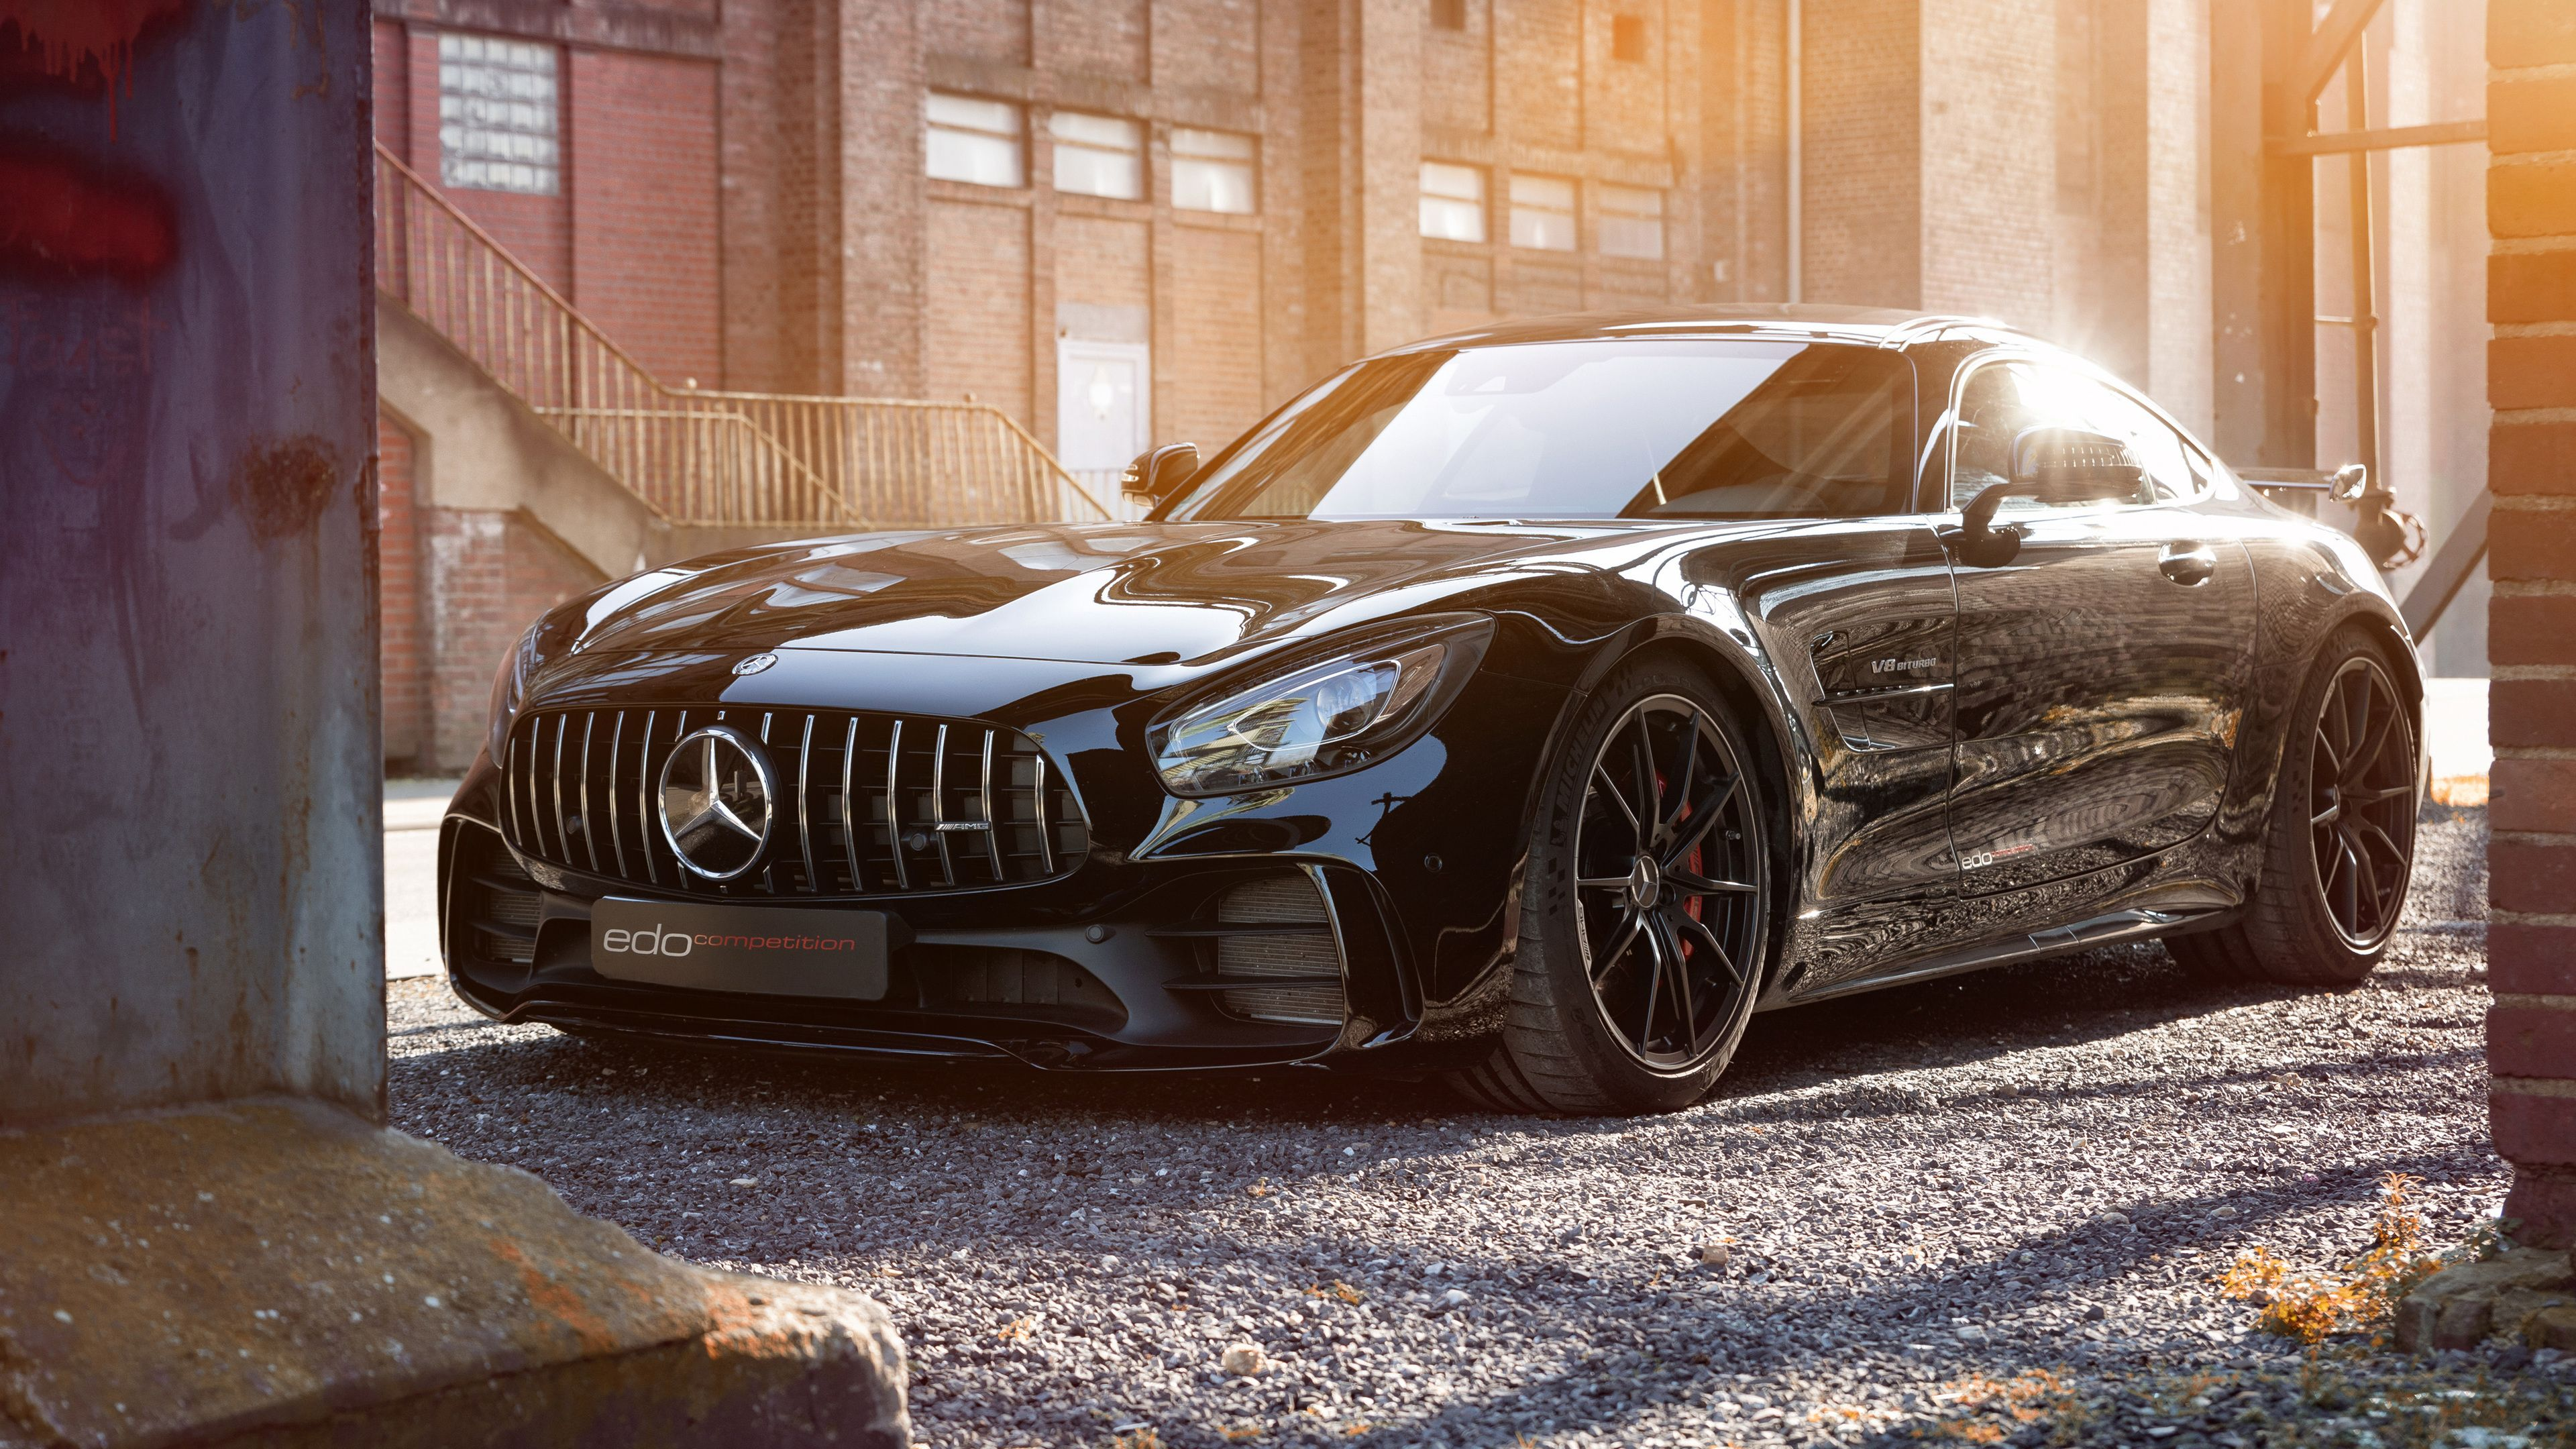 Edo Competition Mercedes Amg Gtr 2018 Mercedes Wallpapers Mercedes